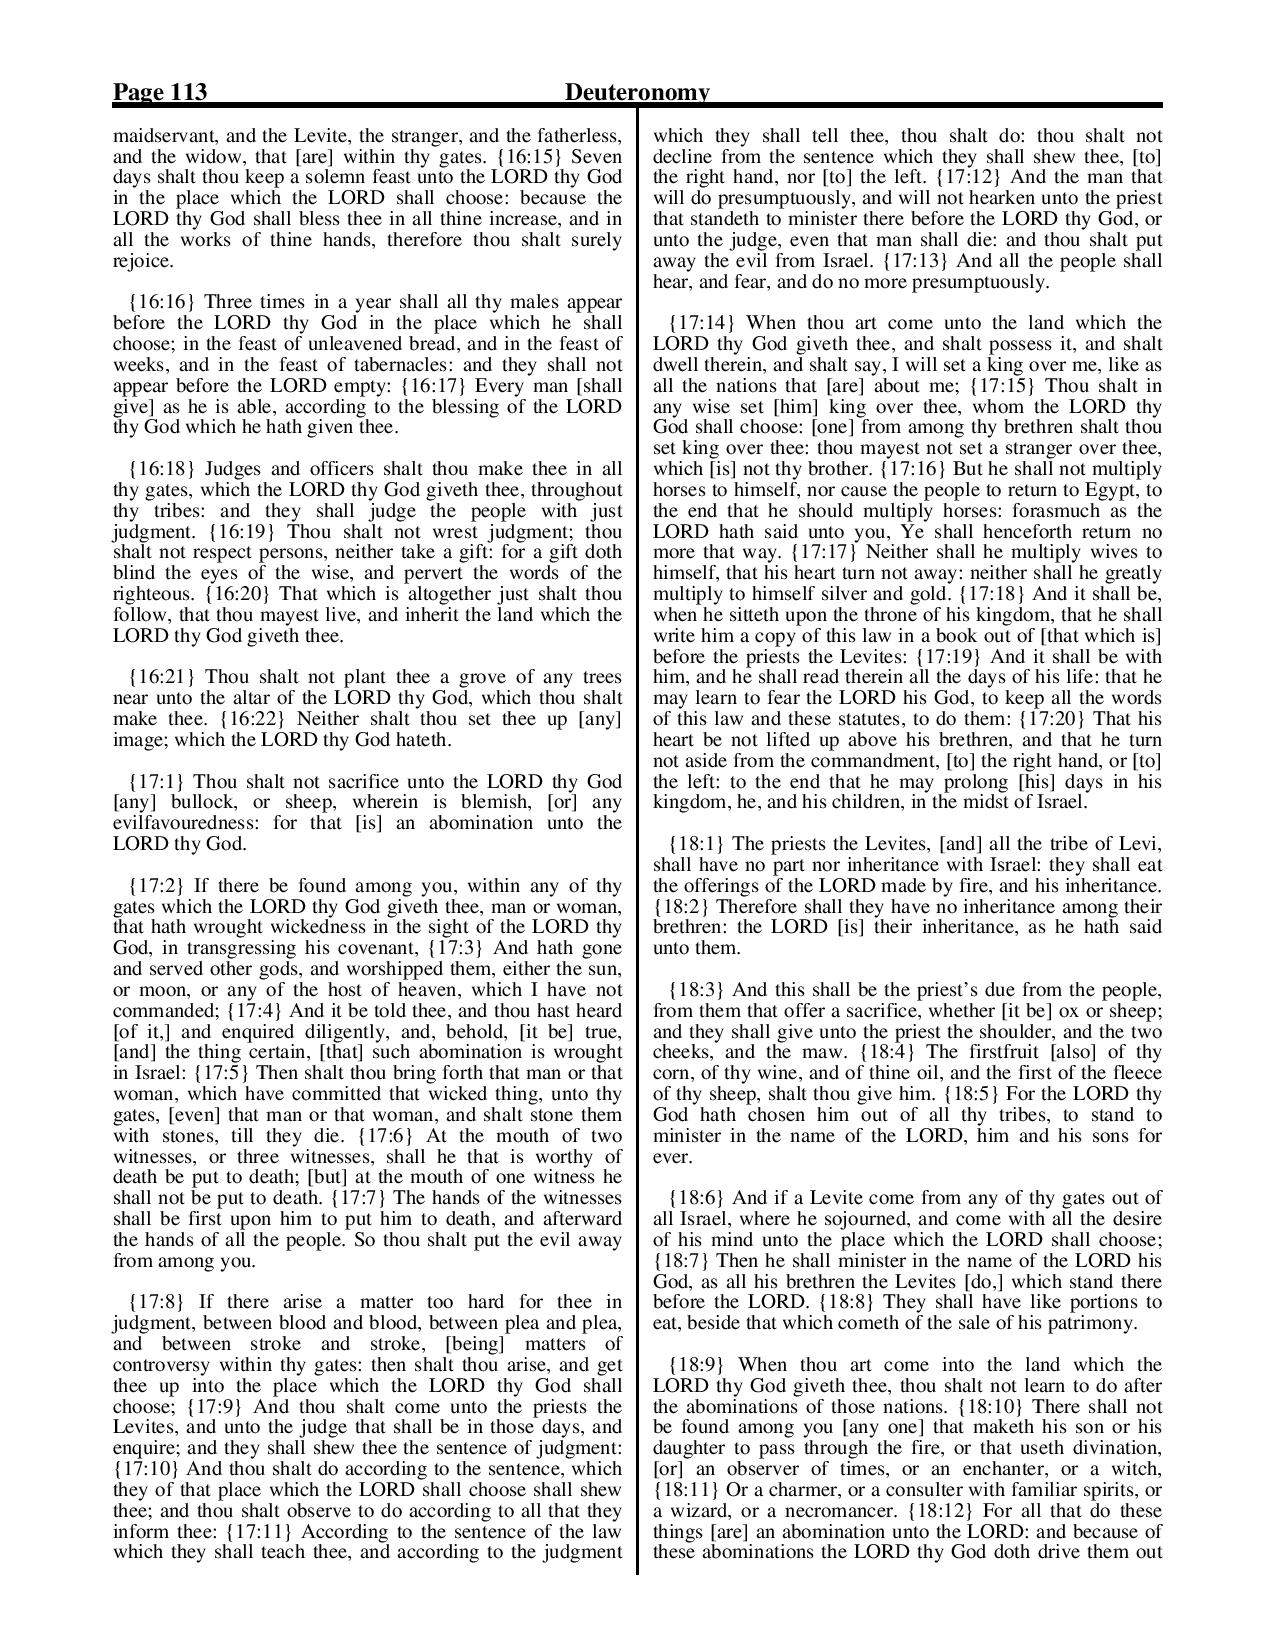 King-James-Bible-KJV-Bible-PDF-page-134